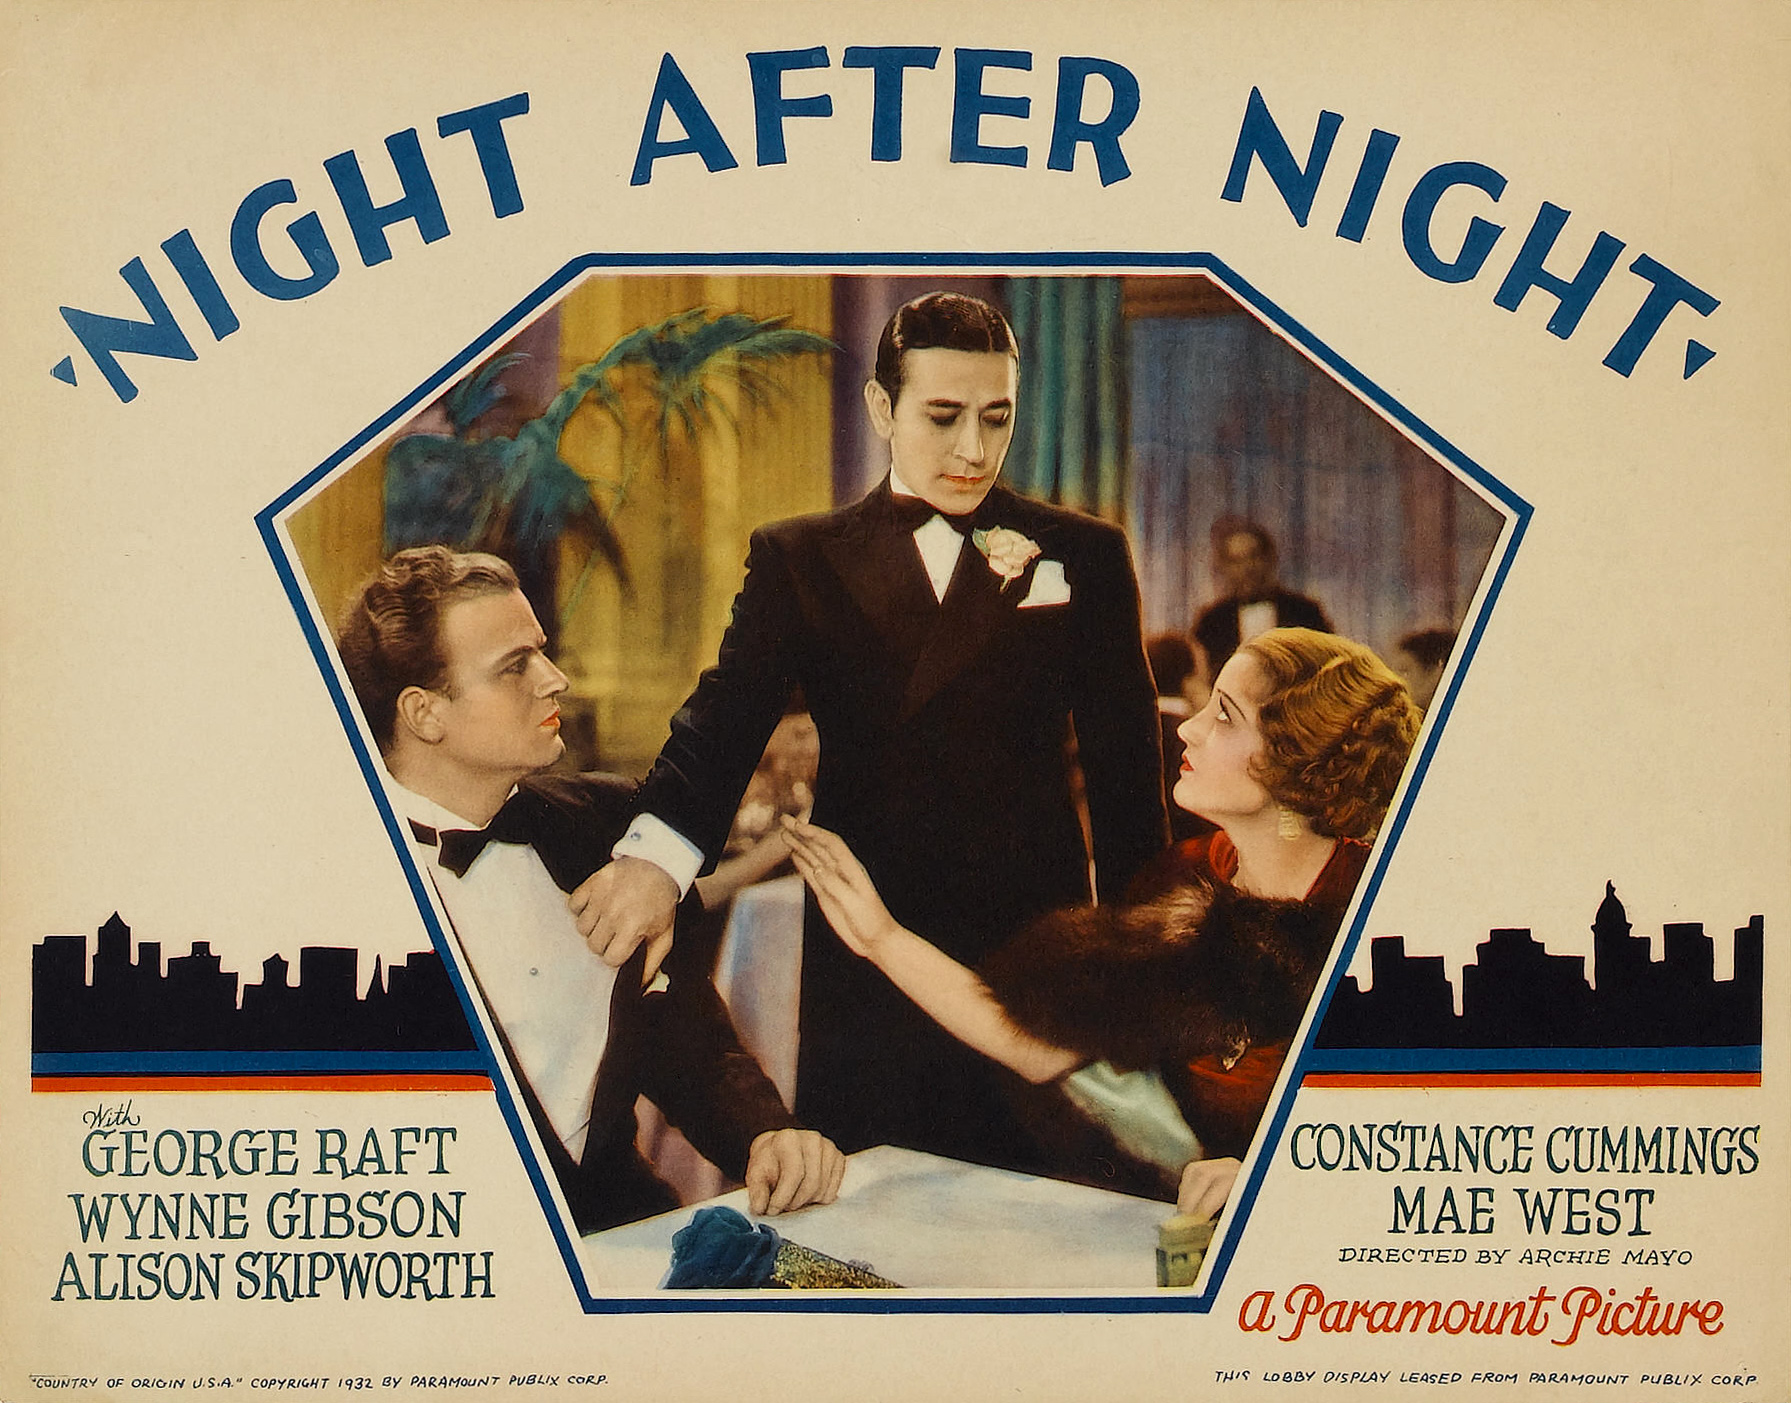 1932 movie night after night